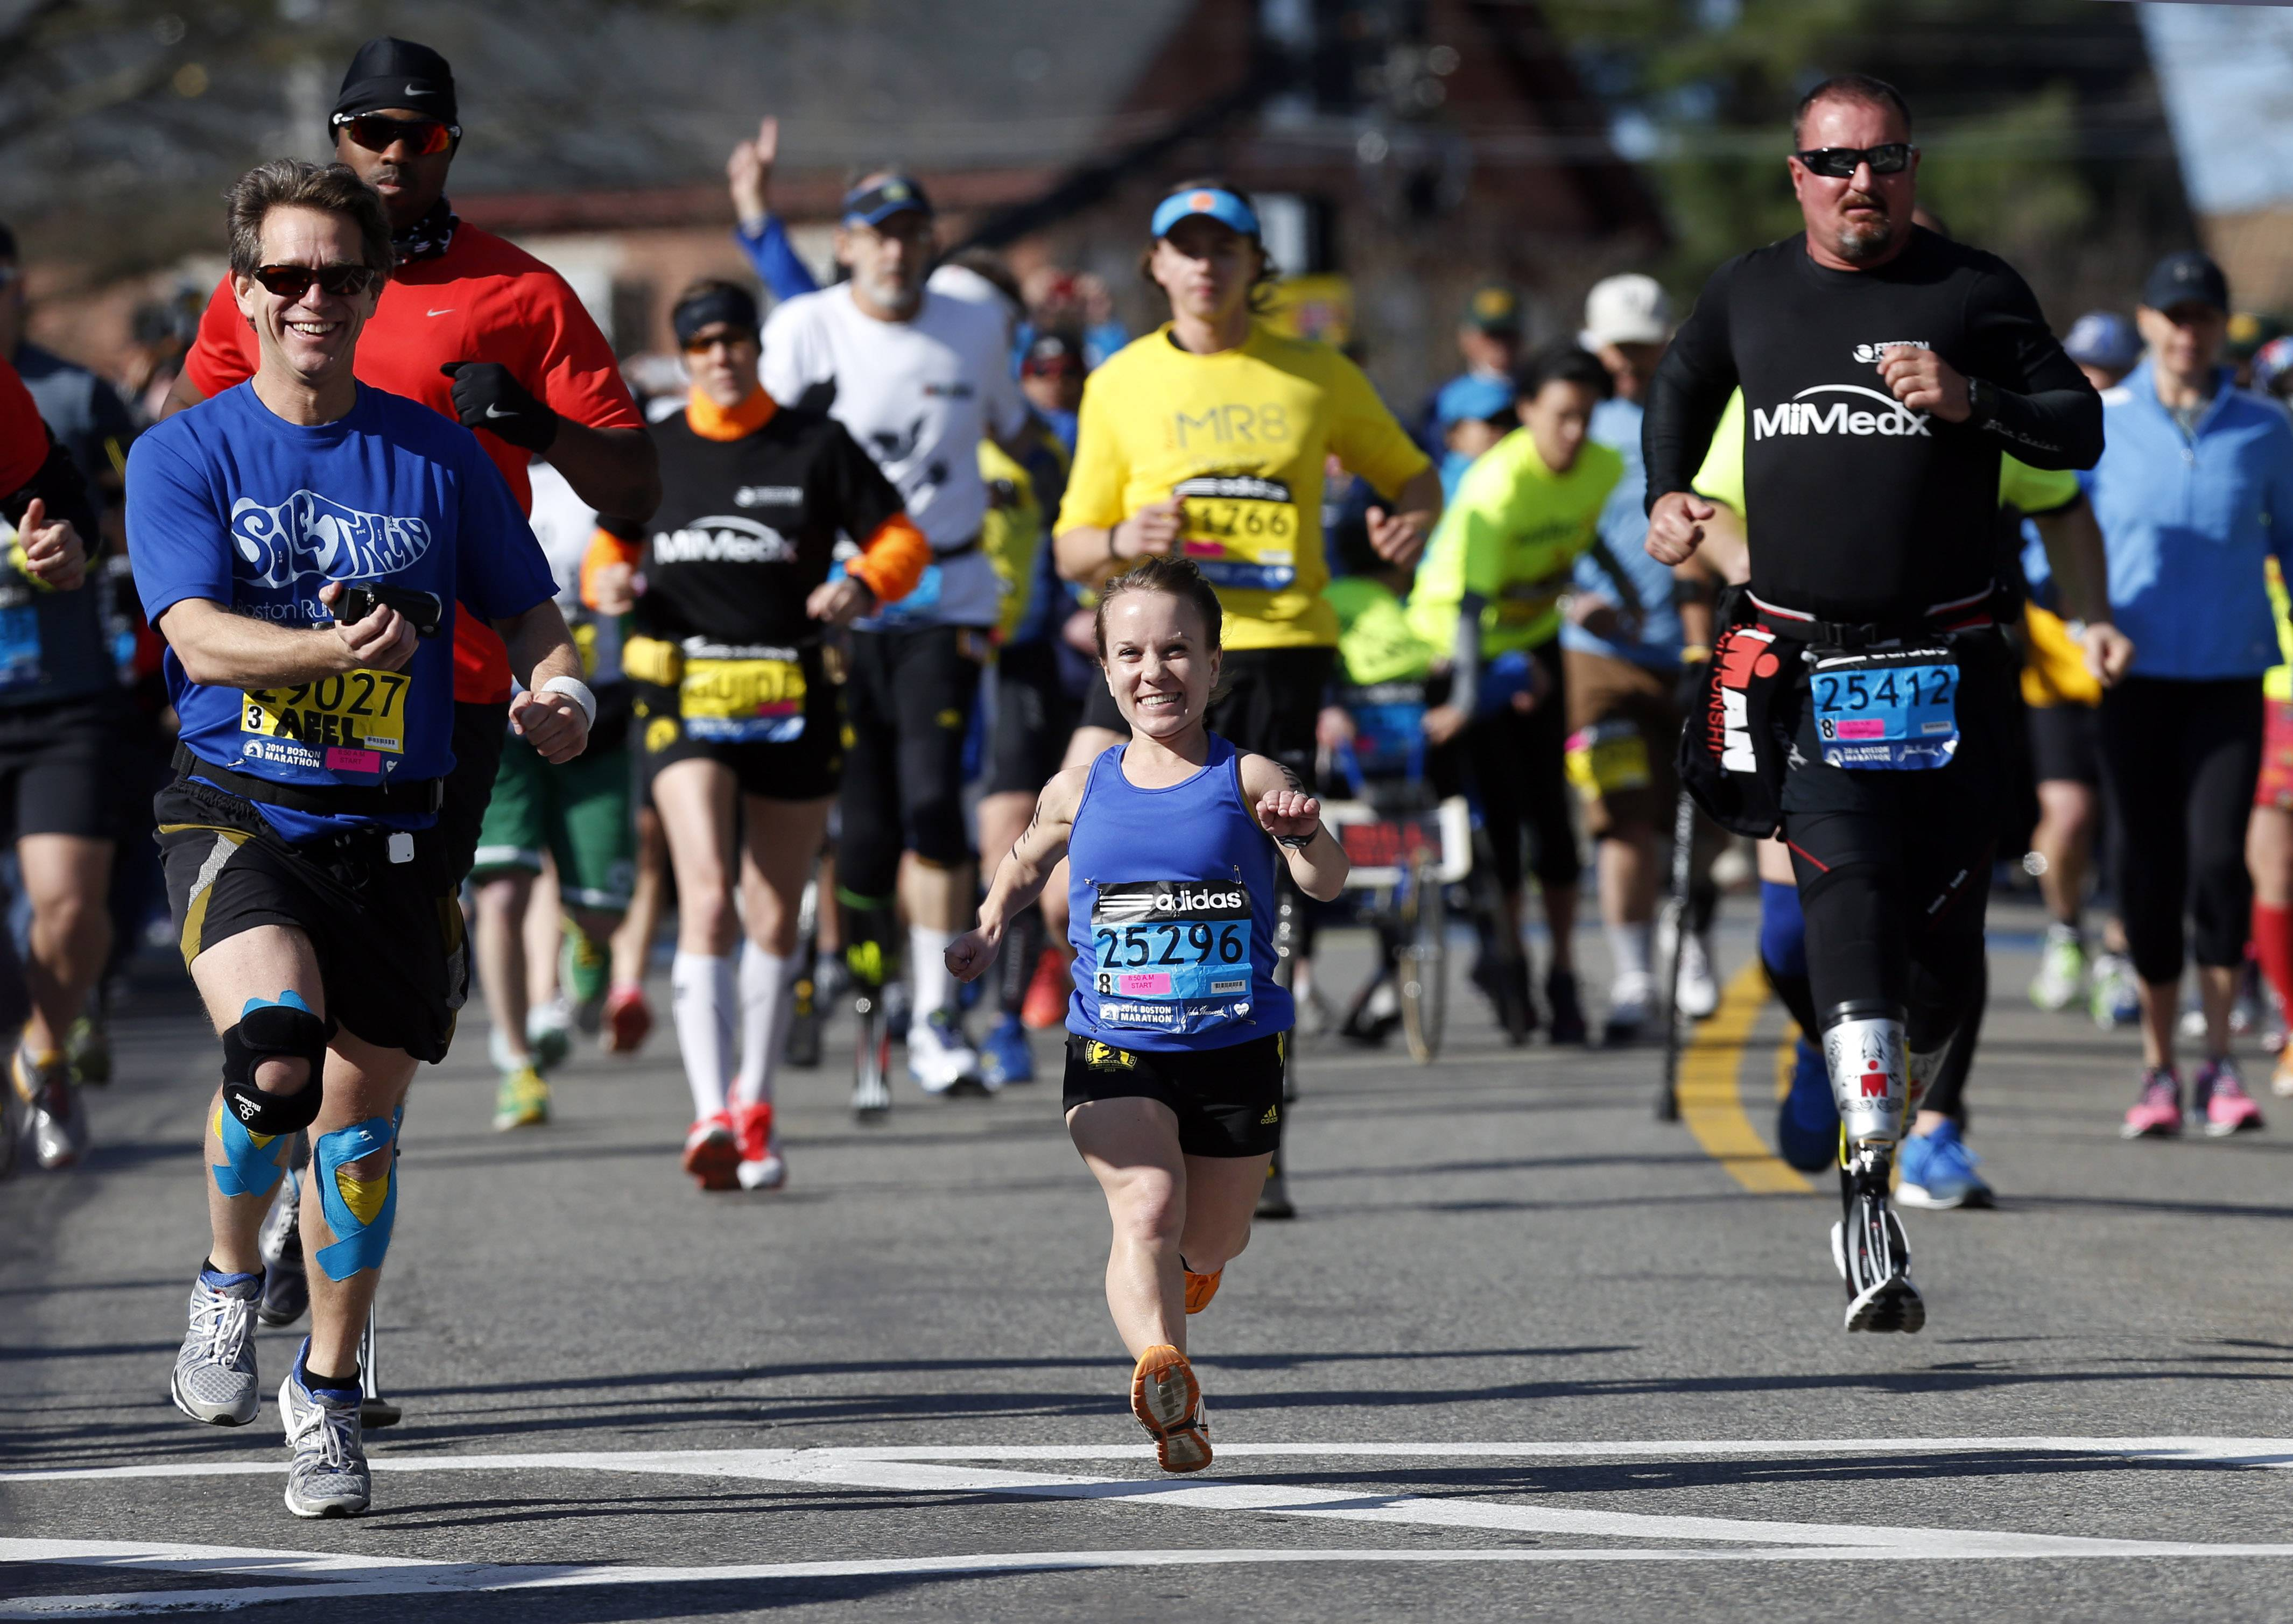 Mobility-impared runners David Abel, left, Juli Windsor, and Scott Rigsby compete in the 118th Boston Marathon Monday, April 21, 2014 in Hopkinton, Mass.